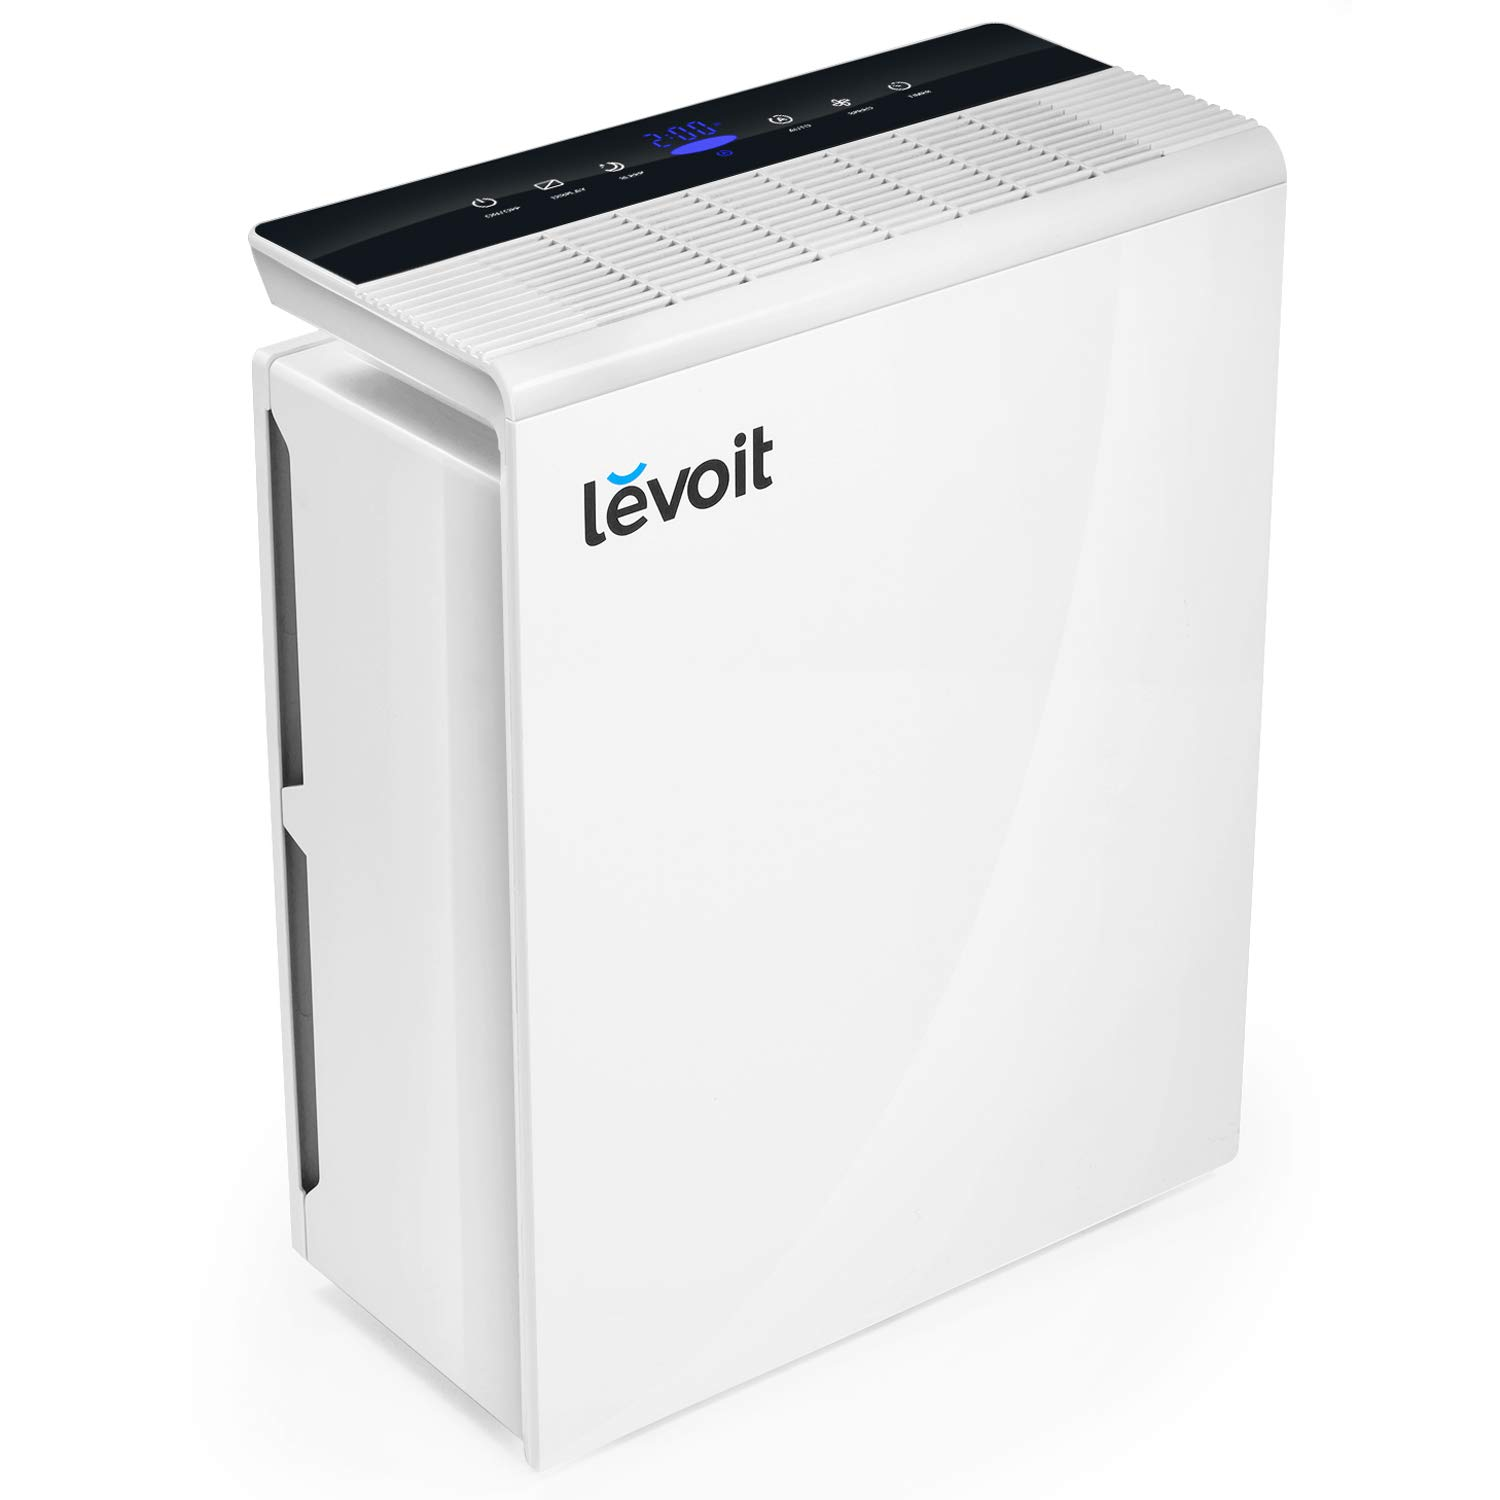 LEVOIT LV-PUR131 Air Purifier for Home with True HEPA Filter, Cleaner for Large Room, Allergies, Pets, Smokers, Smoke, Dust, Odor Eliminator, Air Quality Monitor, US-120V, Energy Star, 2-Year Warranty